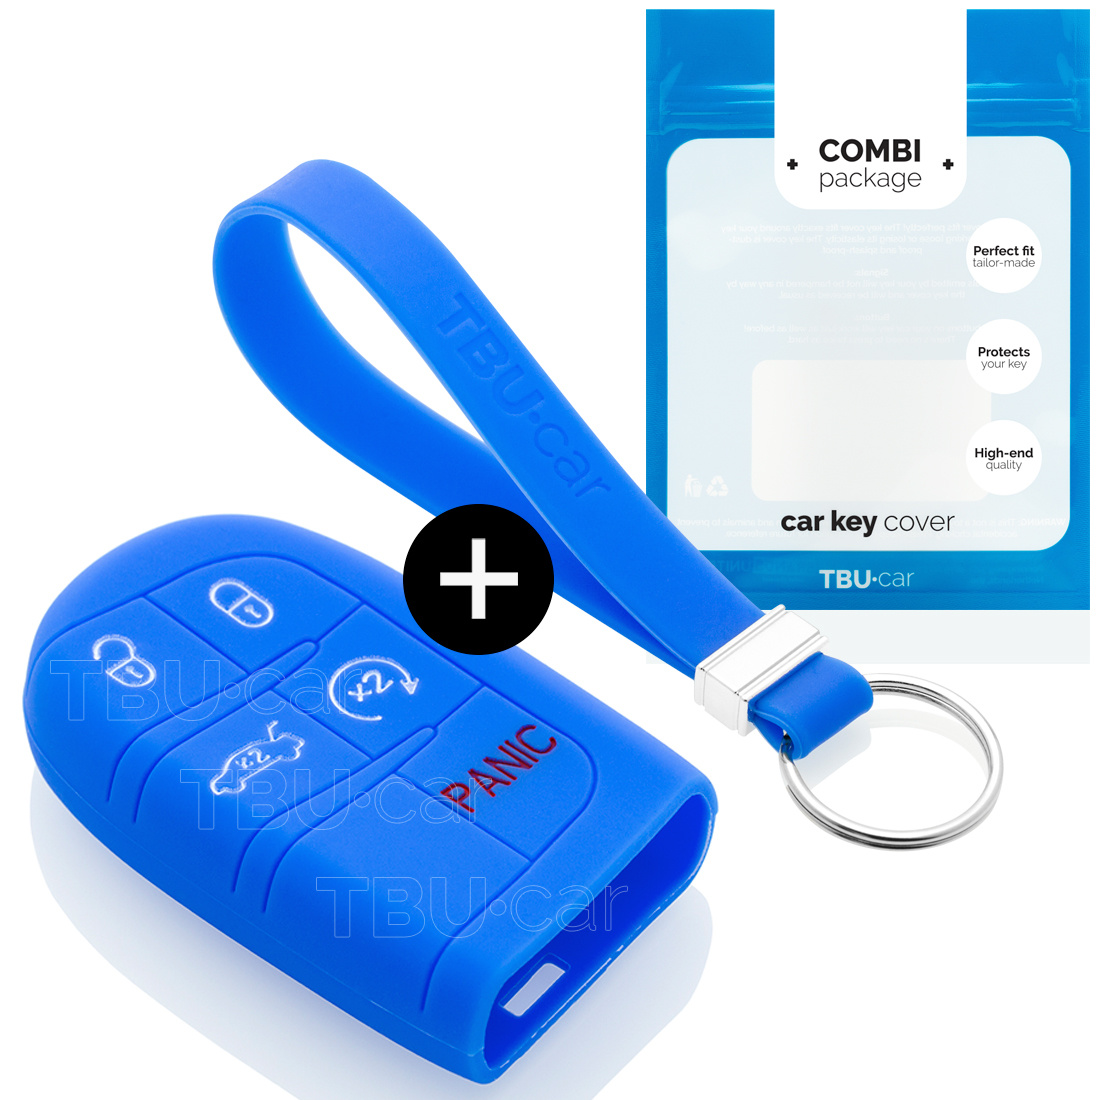 Jeep Car key cover - Silicone Protective Remote Key Shell - FOB Case Cover - Blue